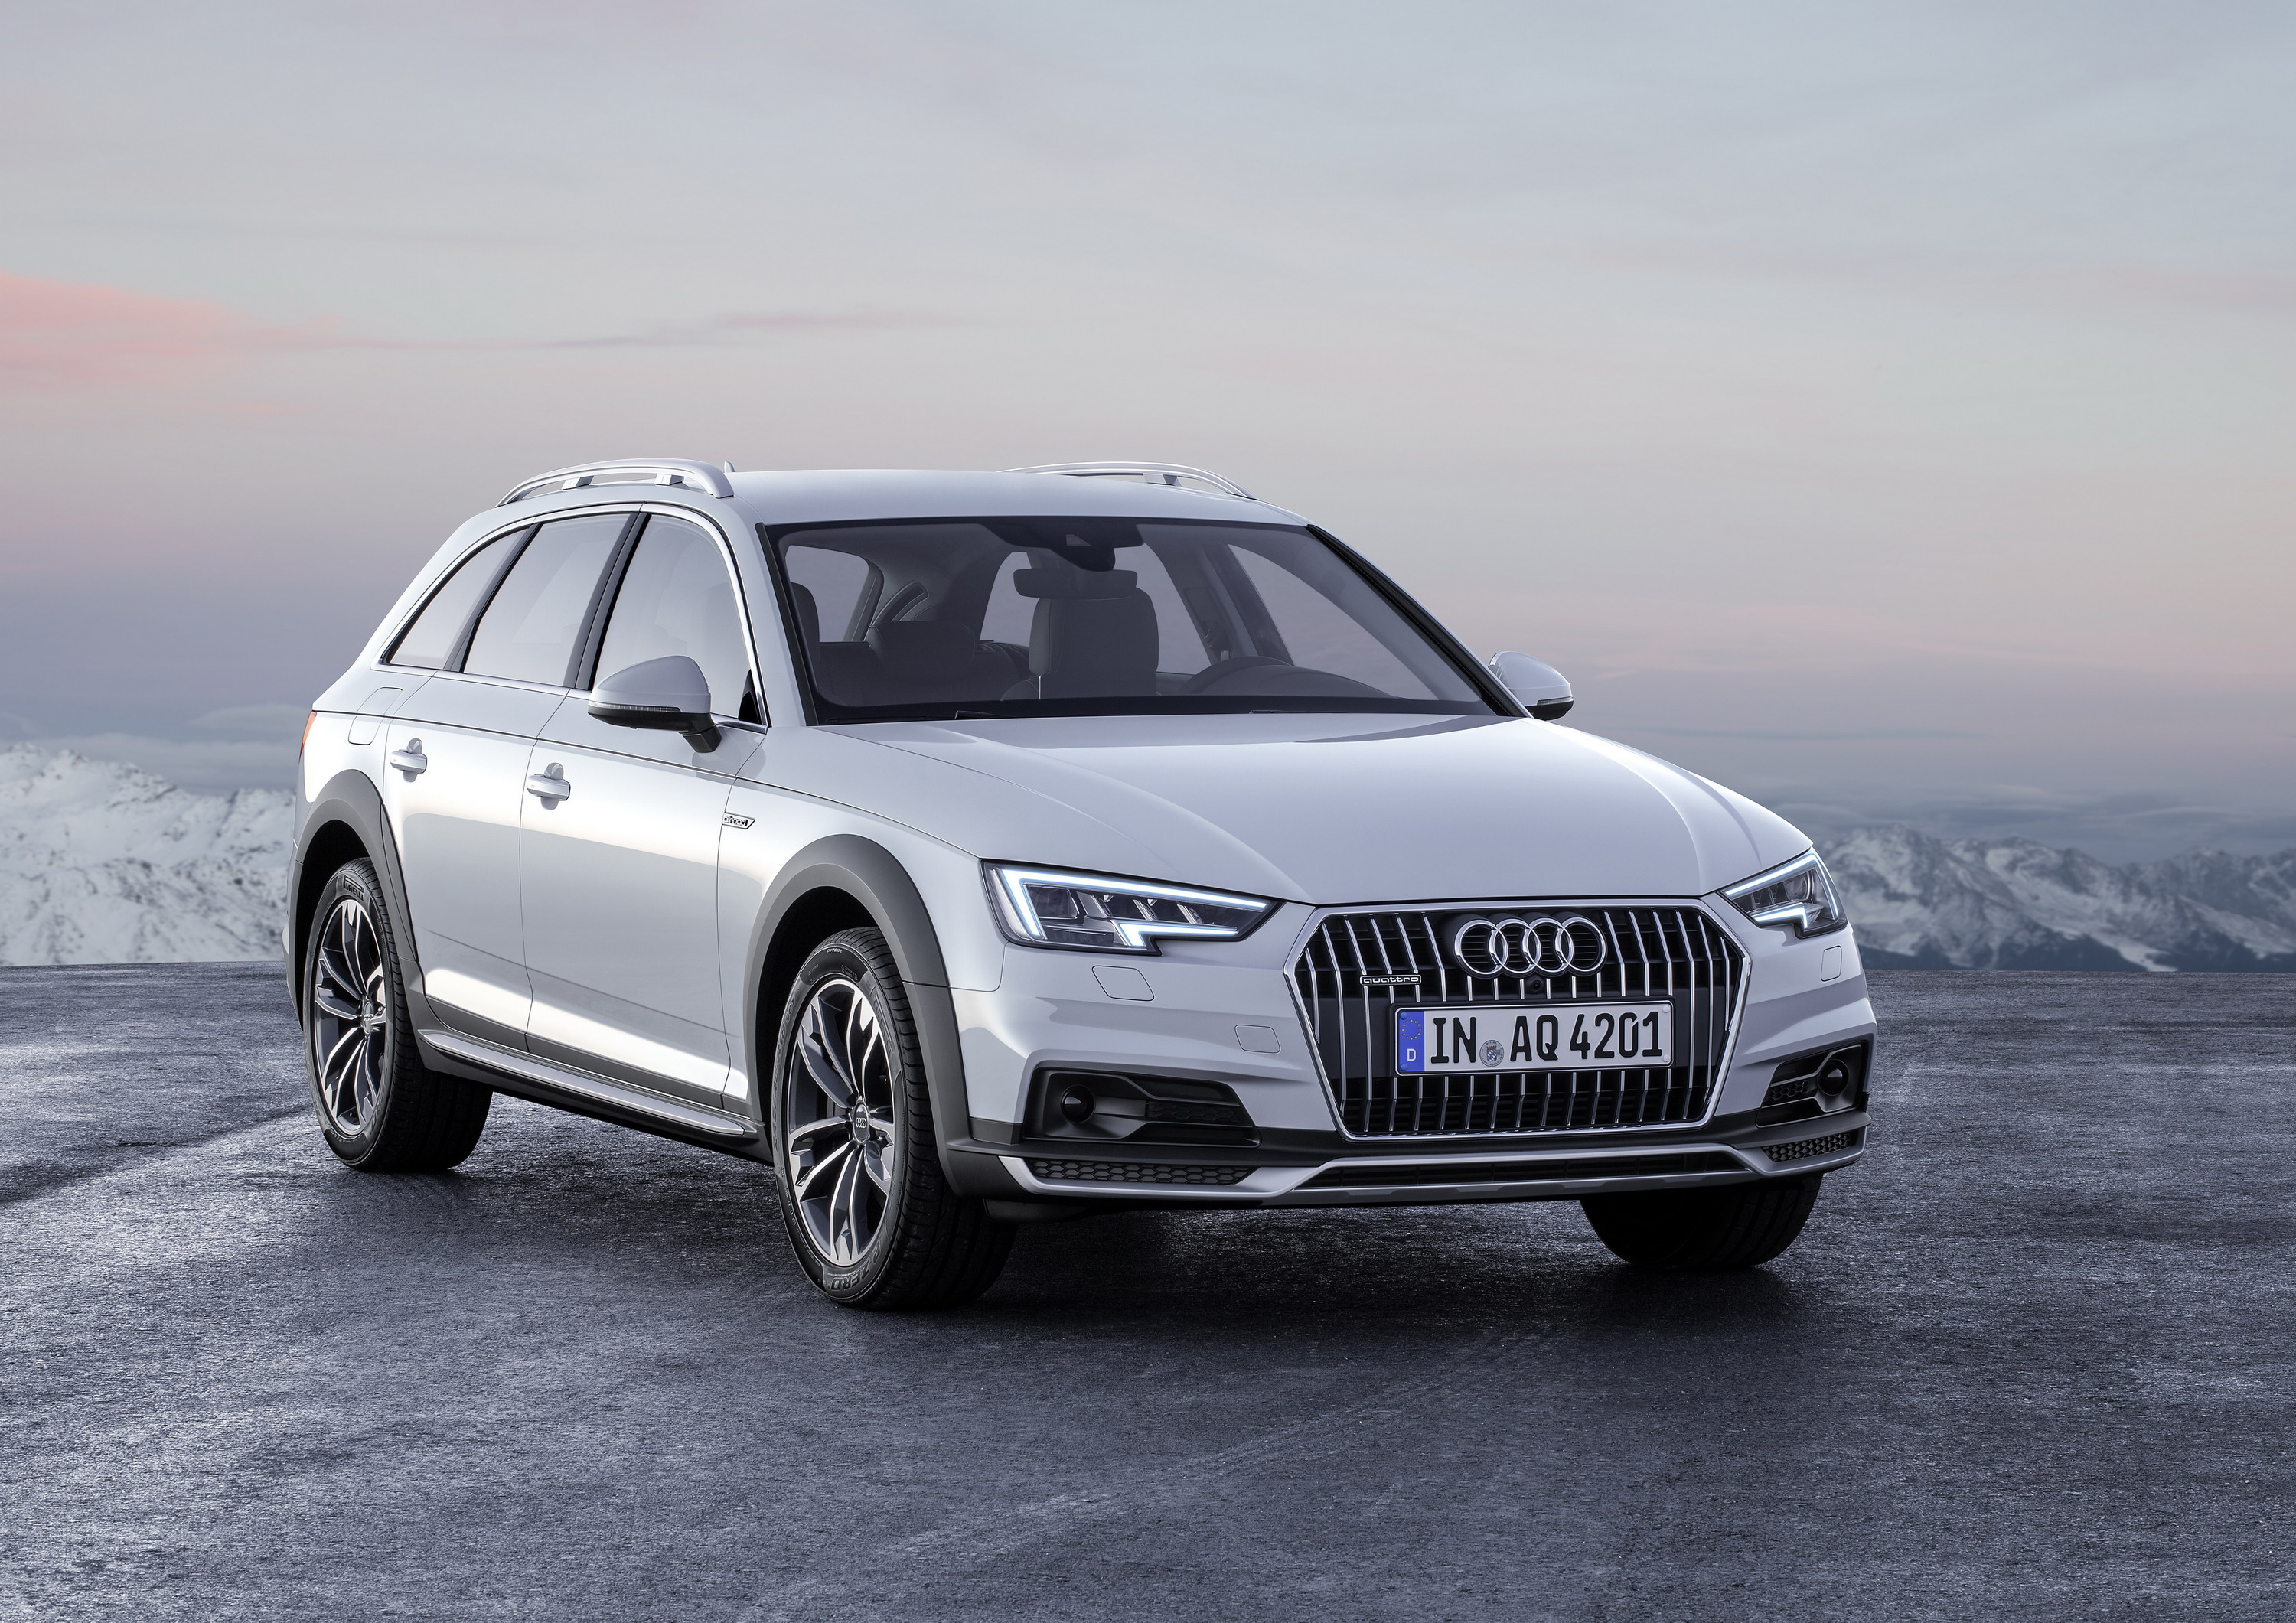 2017 - 2018 Audi A4 Allroad Quattro | Top Sd